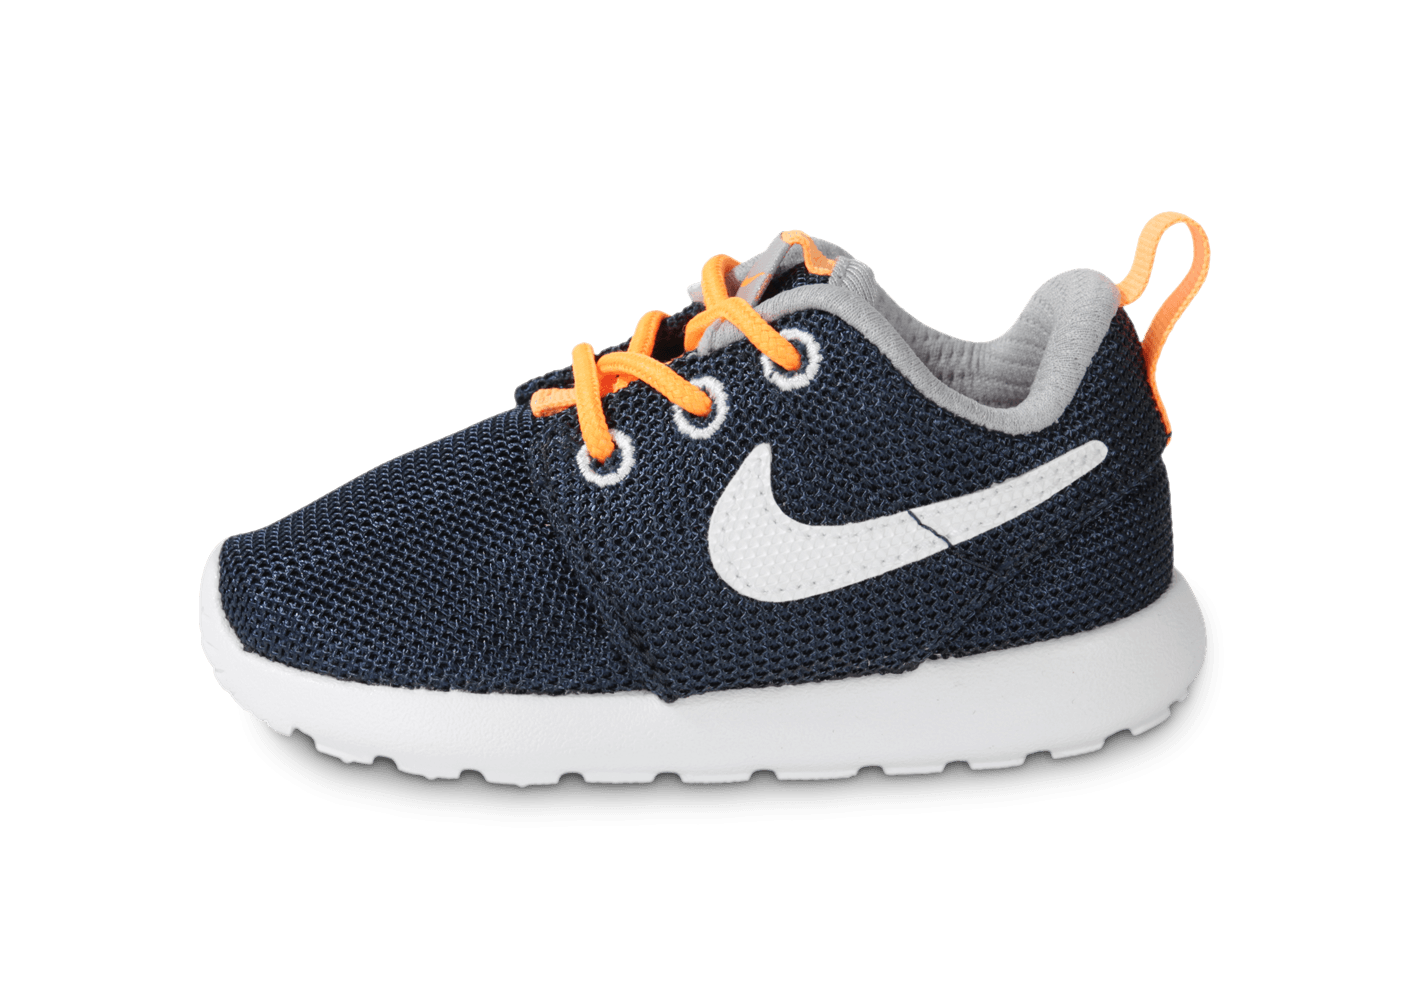 the latest 3d2f0 4f4d5 Nike Roshe One Bébé Obsidian - Chaussures Chaussures - Chausport